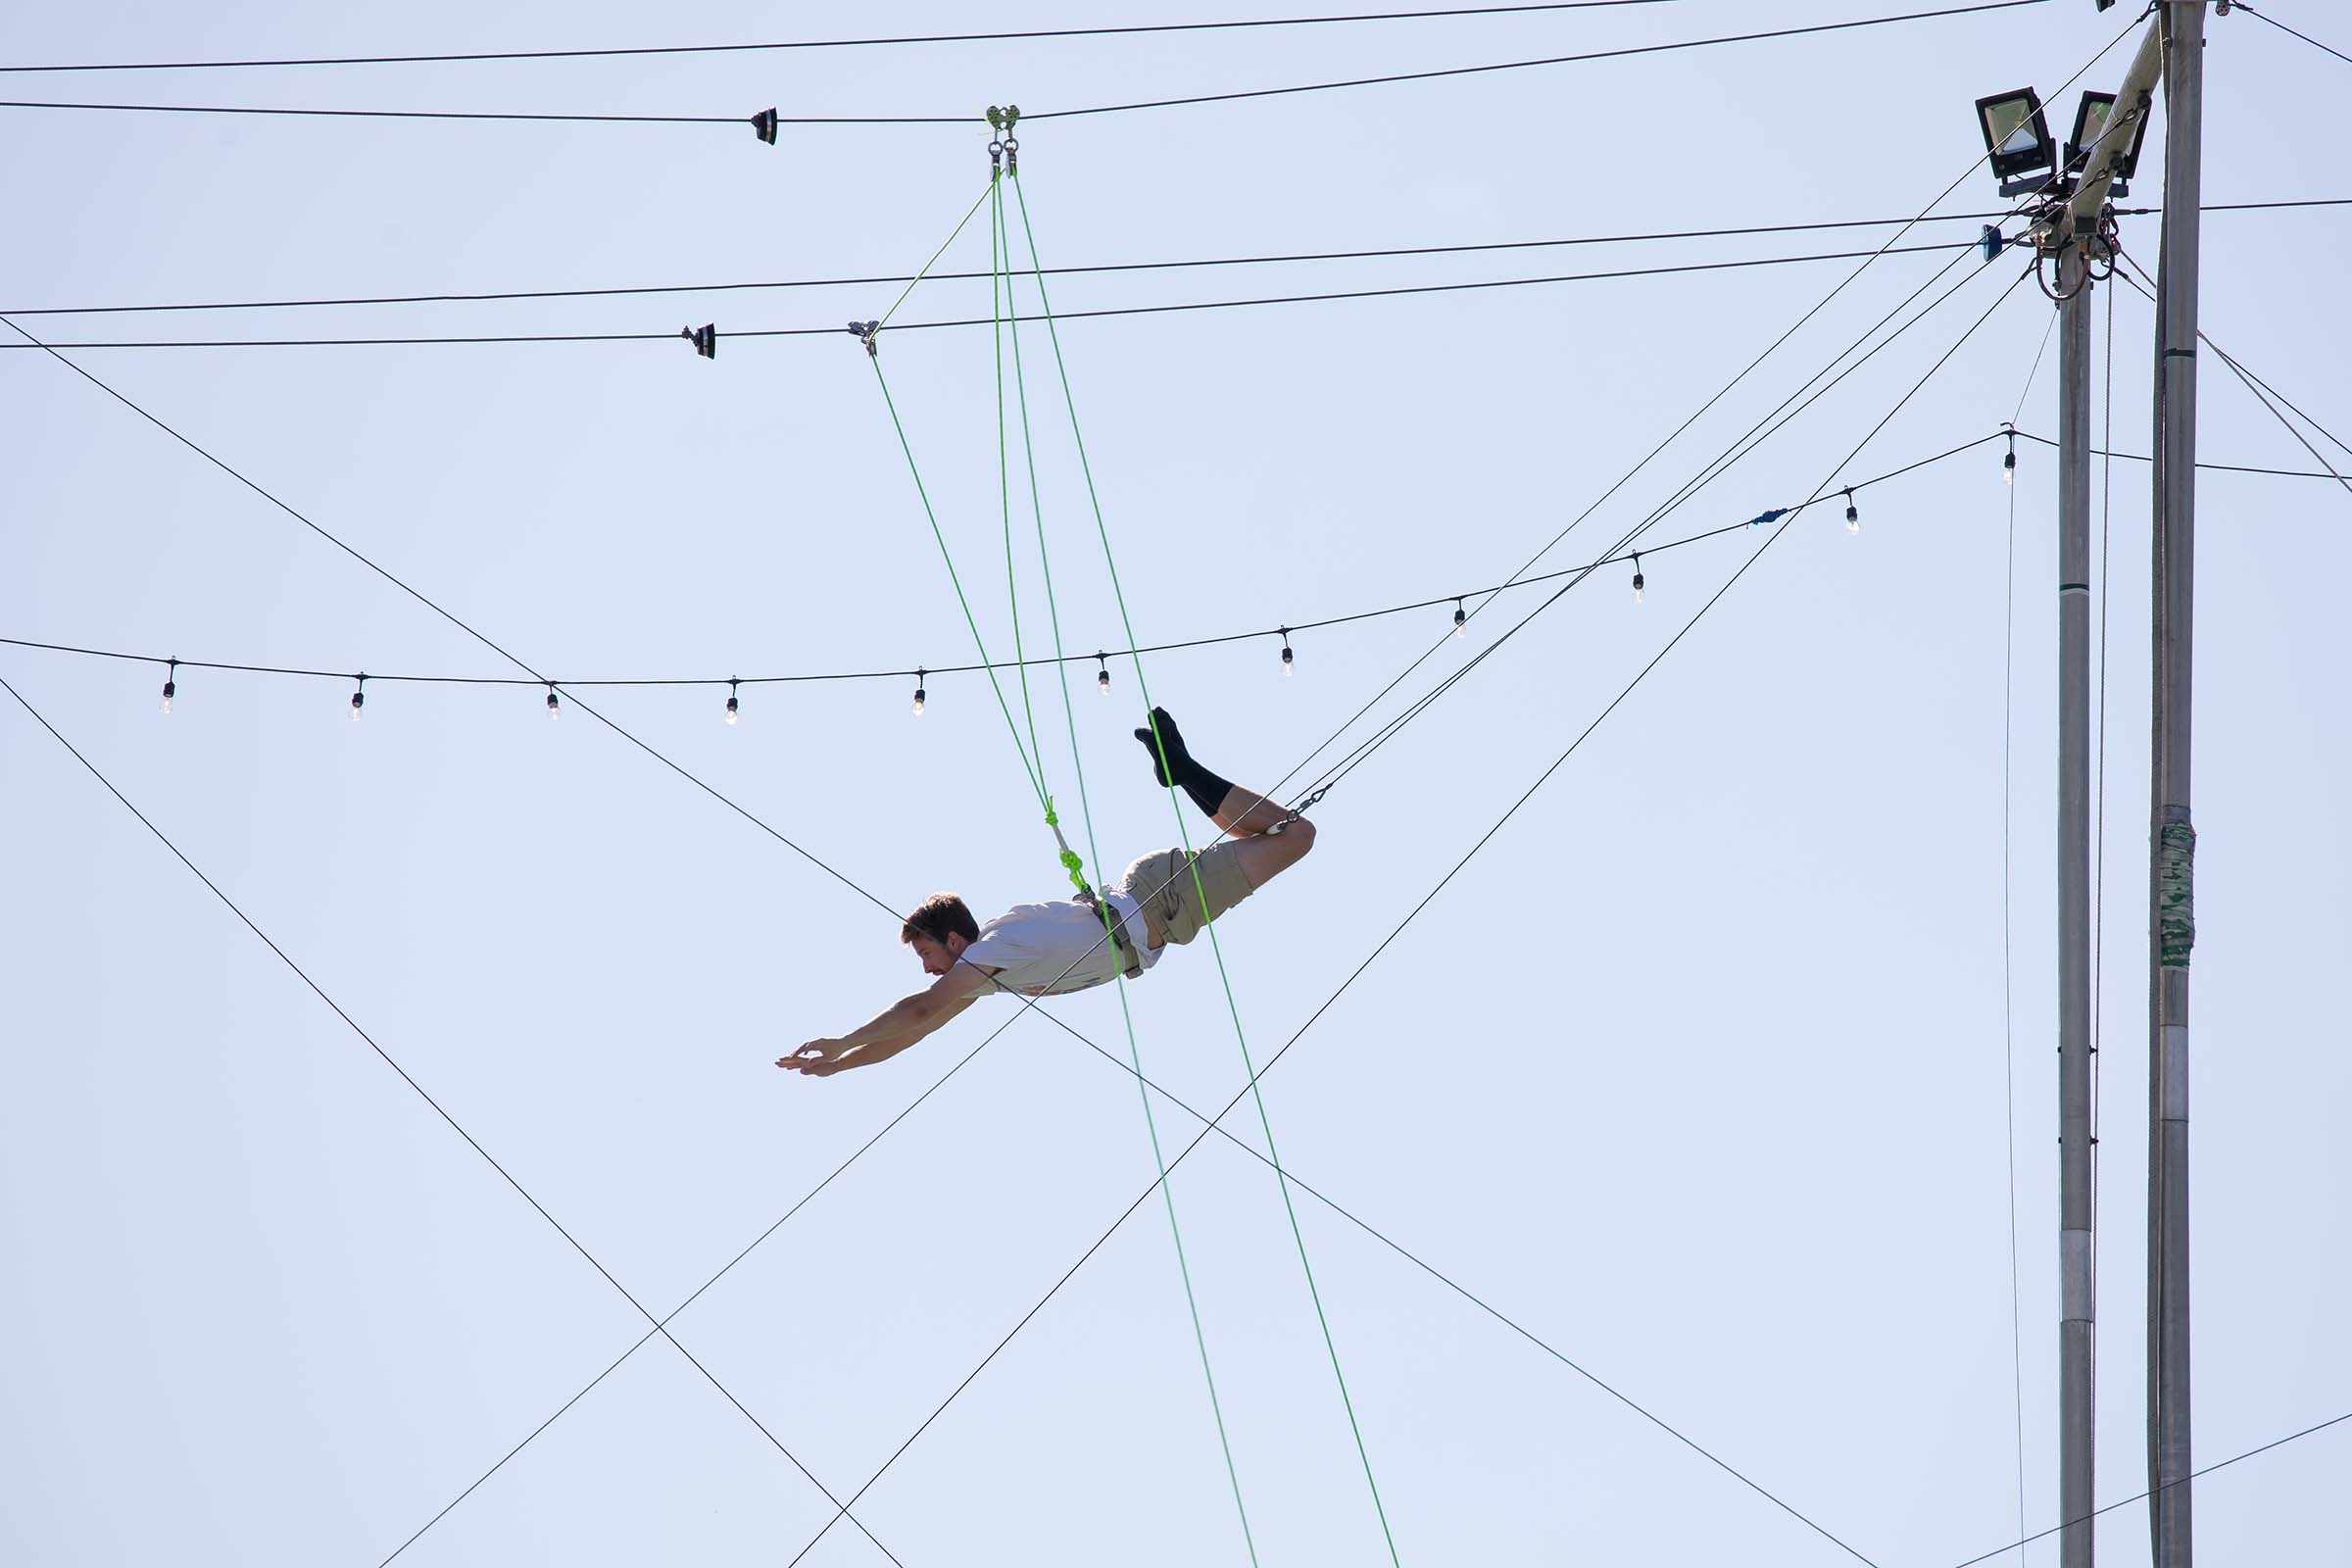 A trapeze artist swings and reaches for the bar in the air